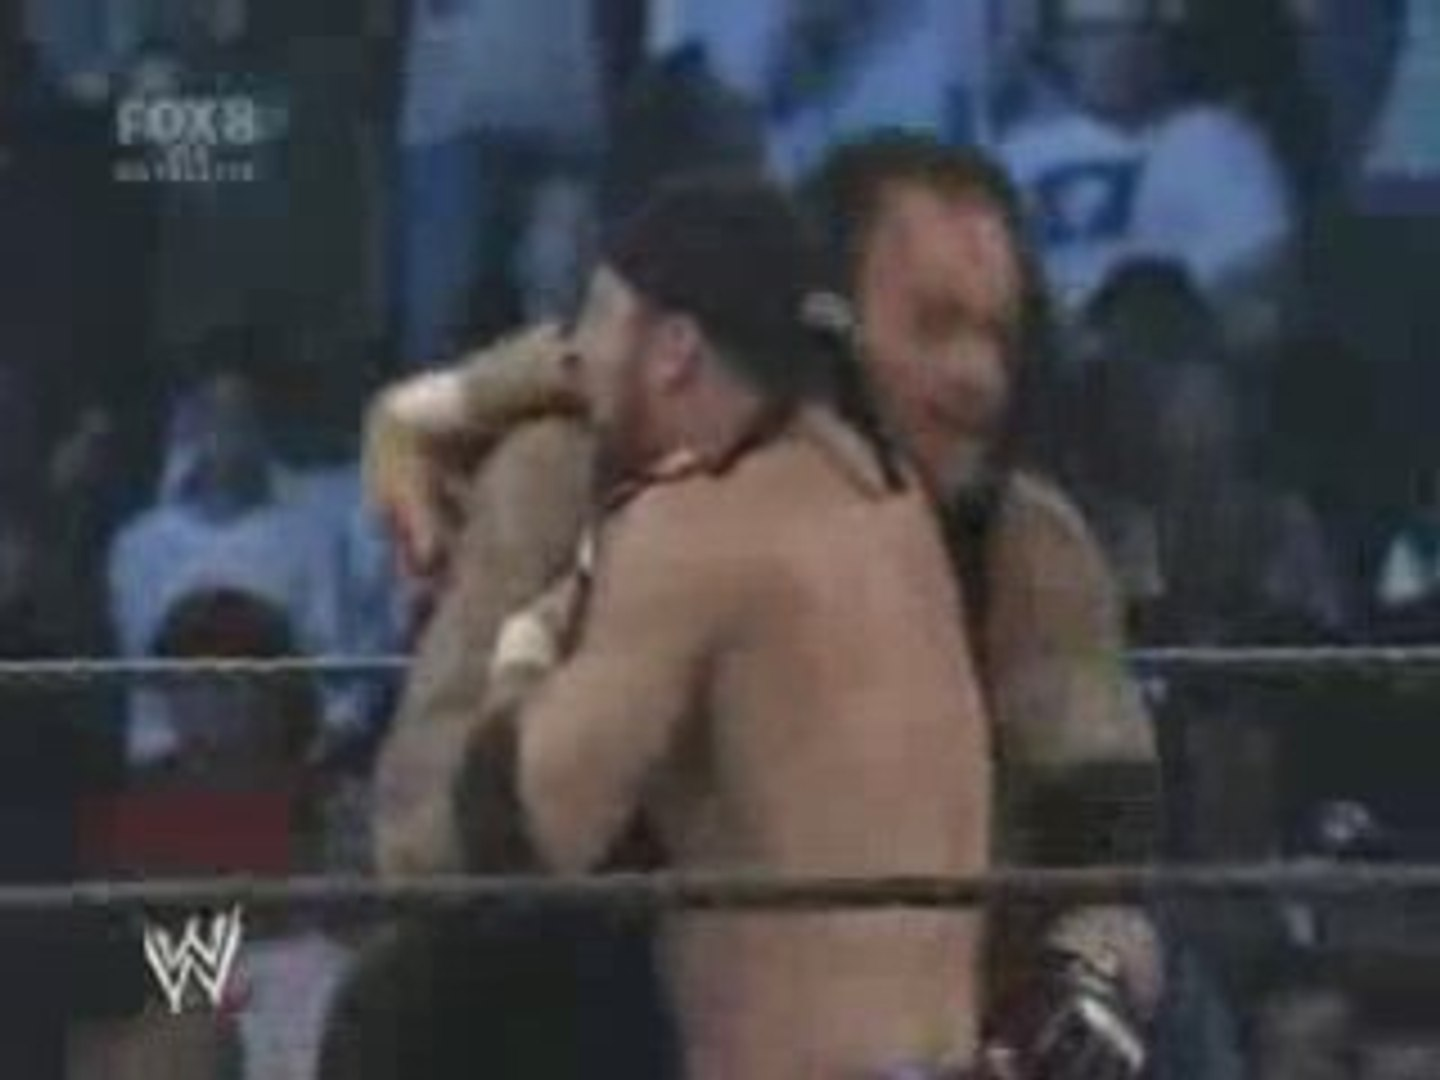 Undertaker chokeslams Gregory Helms